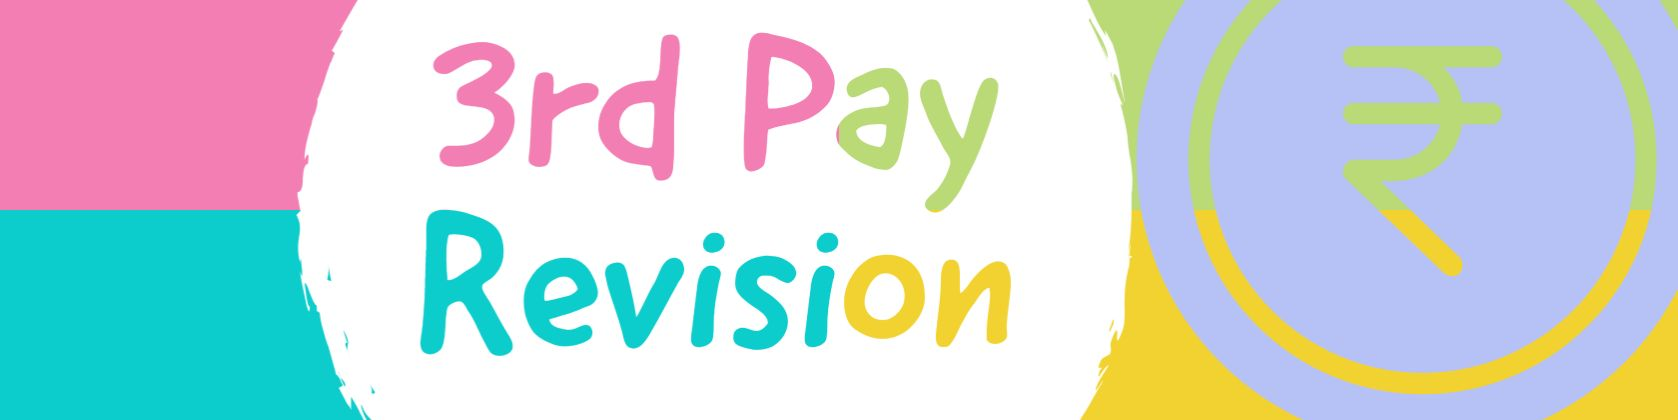 3rd Pay Revision CBSEs